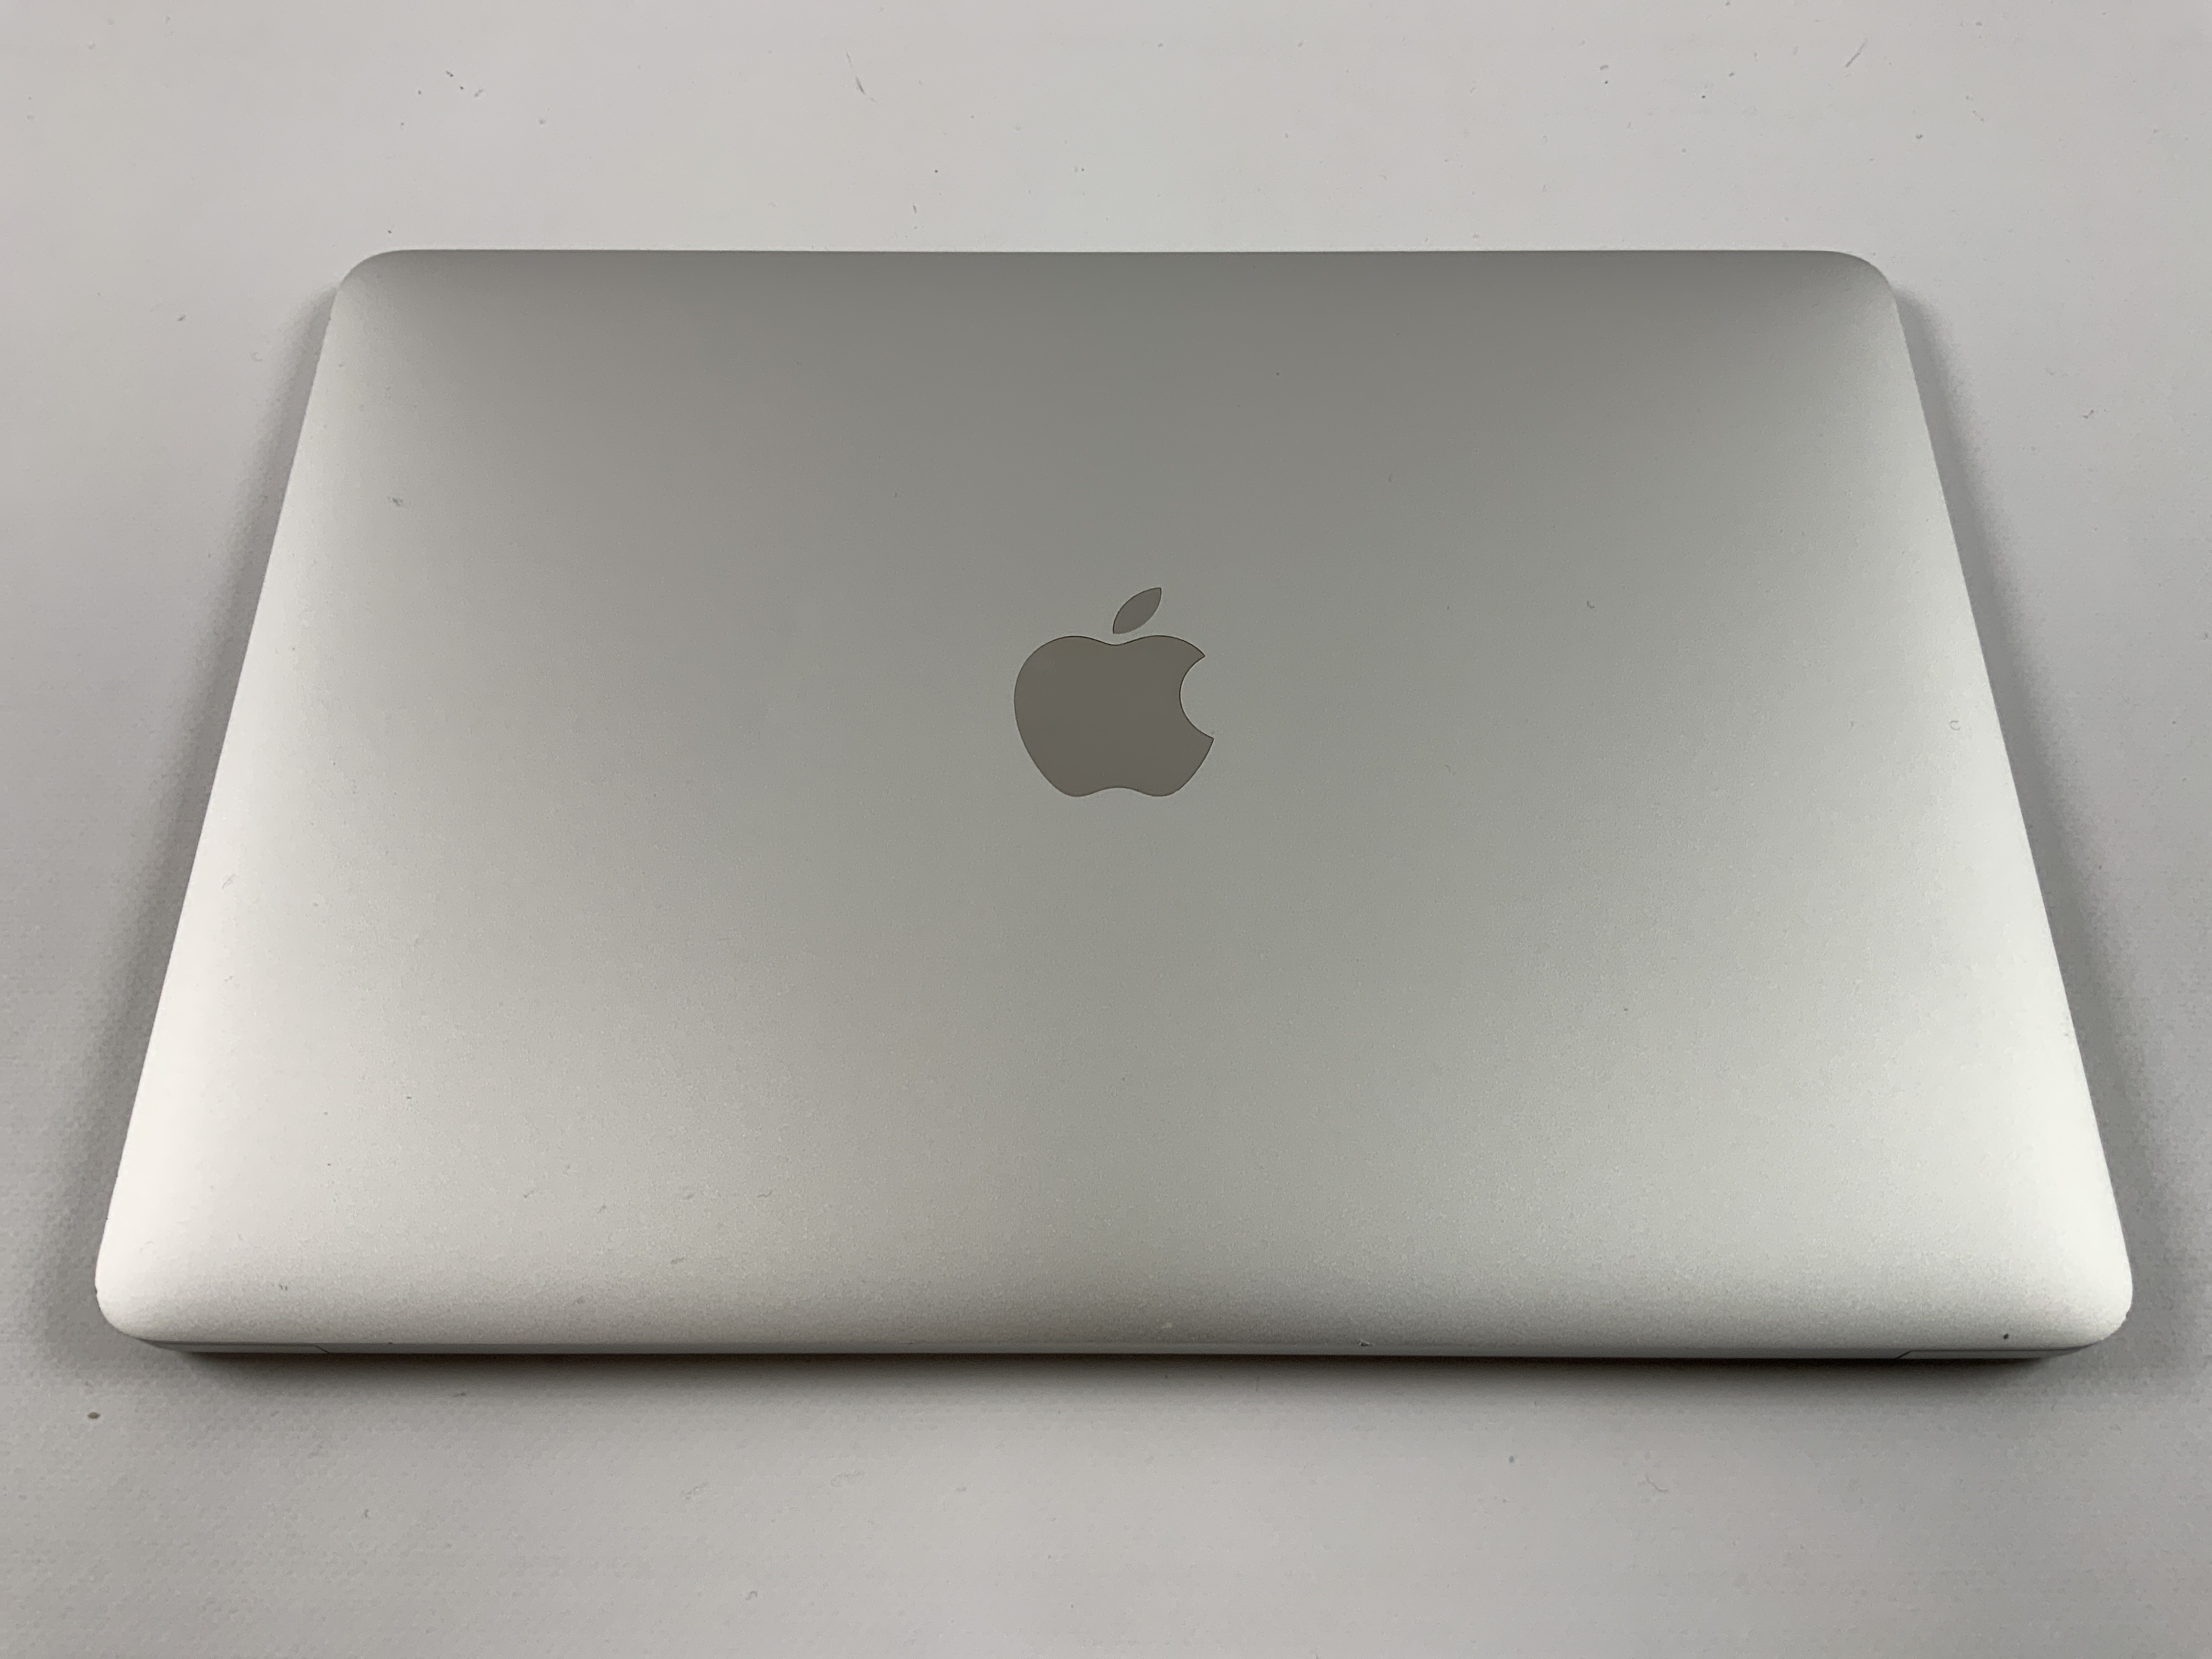 "MacBook 12"" Mid 2017 (Intel Core i5 1.3 GHz 16 GB RAM 512 GB SSD), Silver, Intel Core i5 1.3 GHz, 16 GB RAM, 512 GB SSD, image 2"